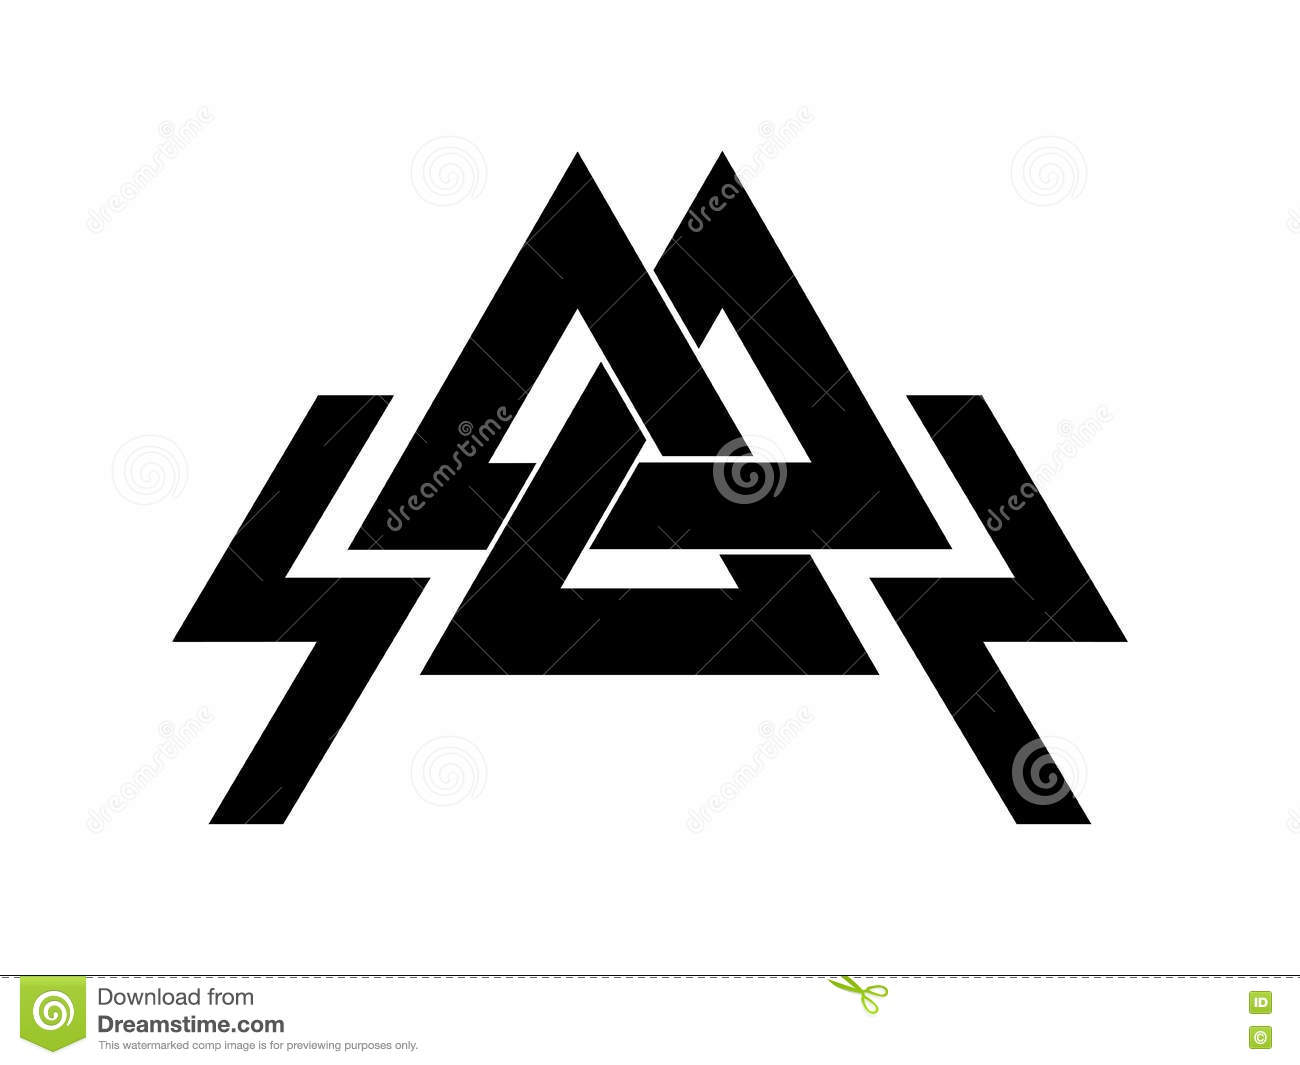 Valknut is a symbol of the worlds end of the tree yggdrasil sign valknut is a symbol of the world s end of the tree yggdrasil sign of the god odin biocorpaavc